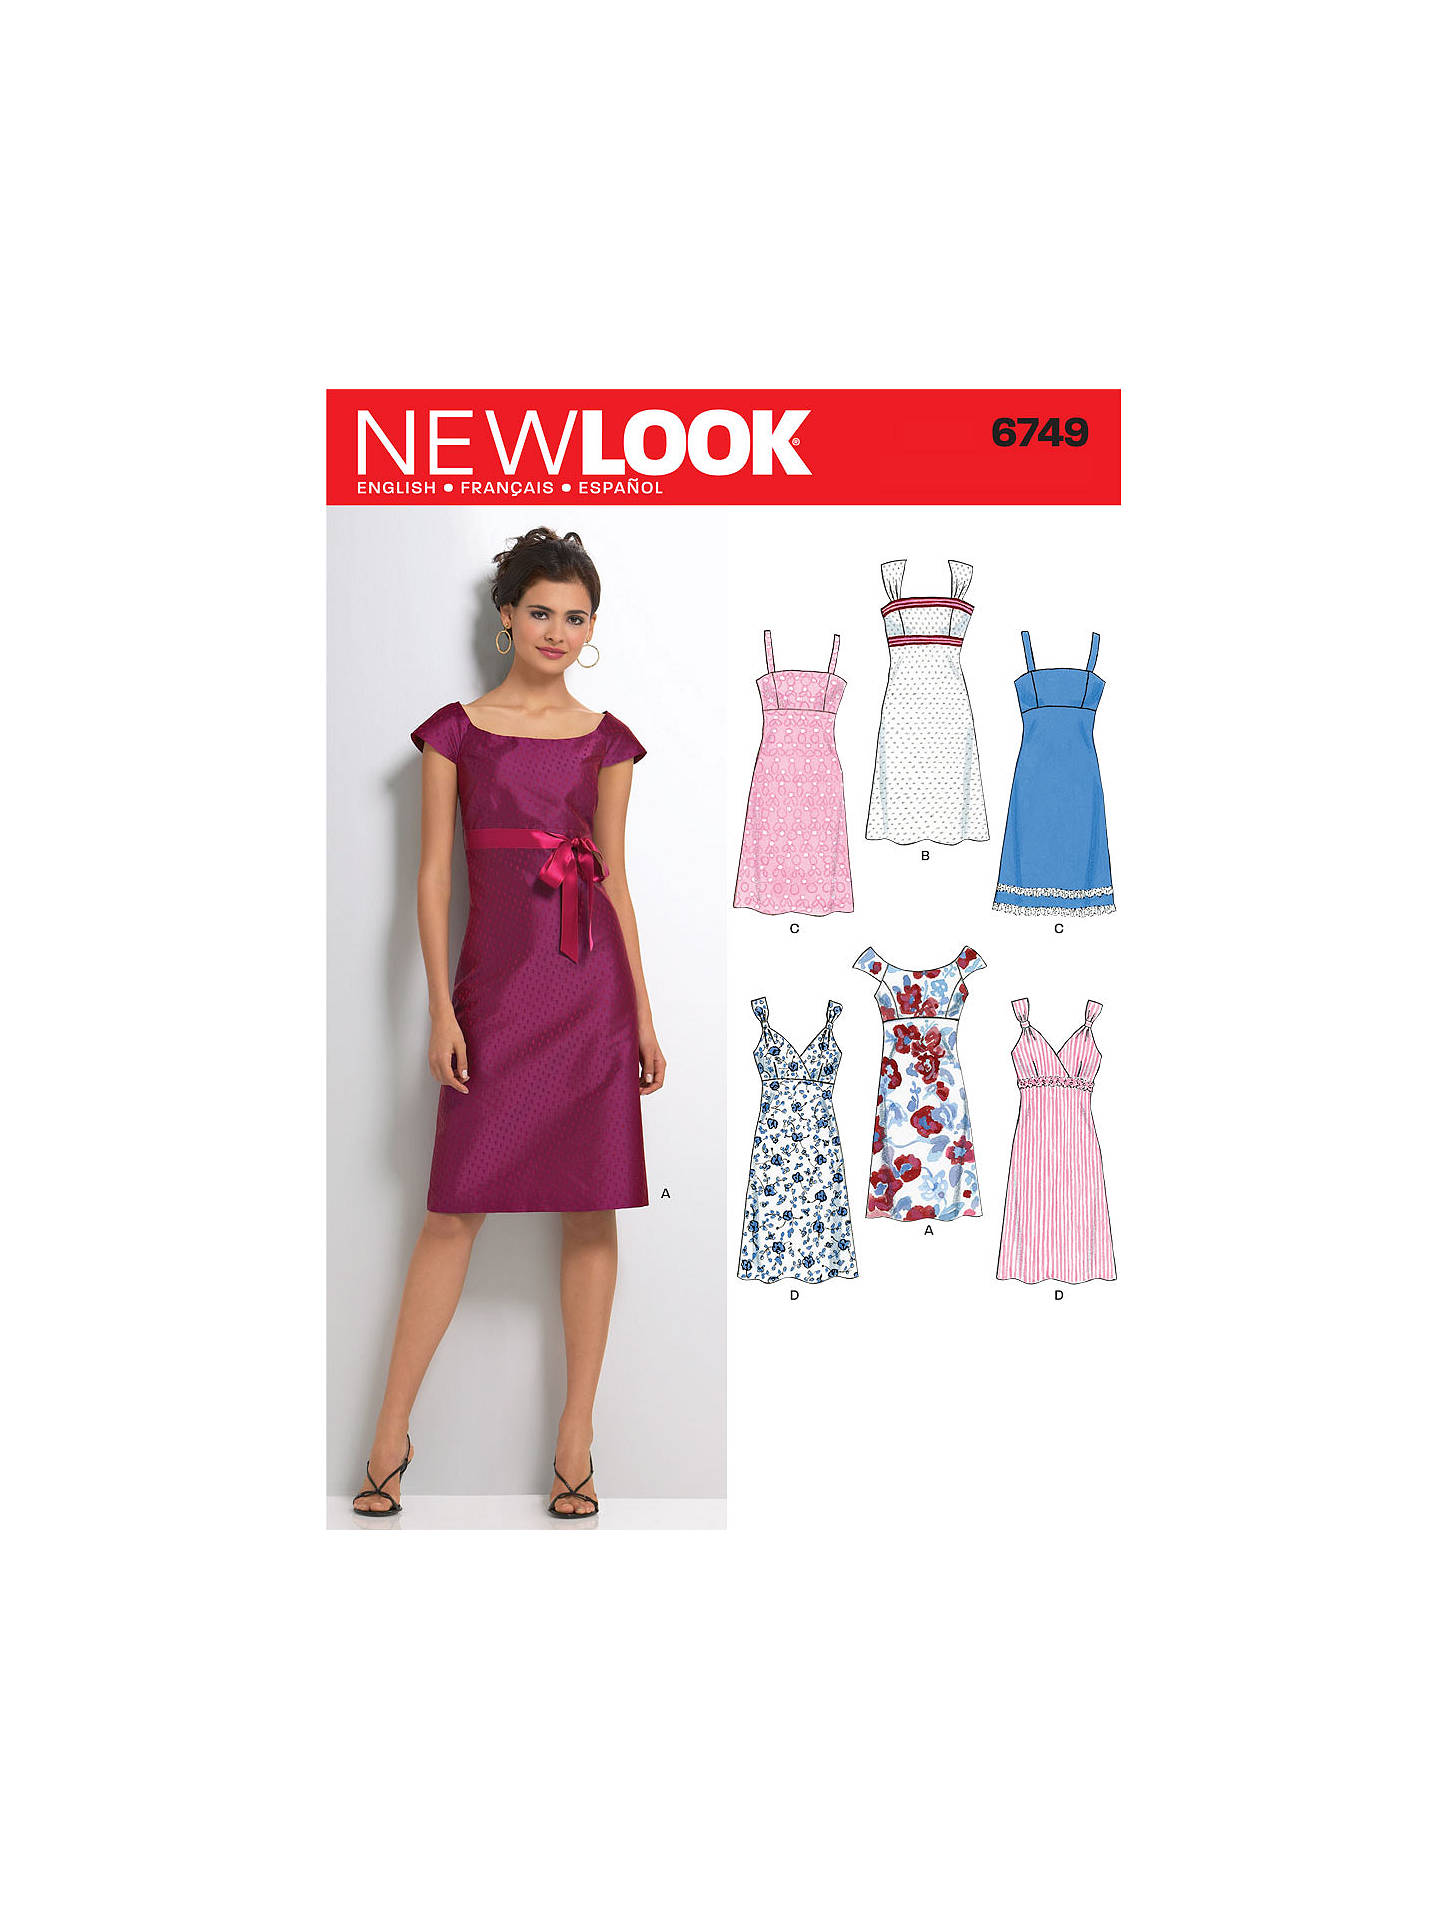 New Look Women\'s Dresses Sewing Patterns, 6749 at John Lewis & Partners